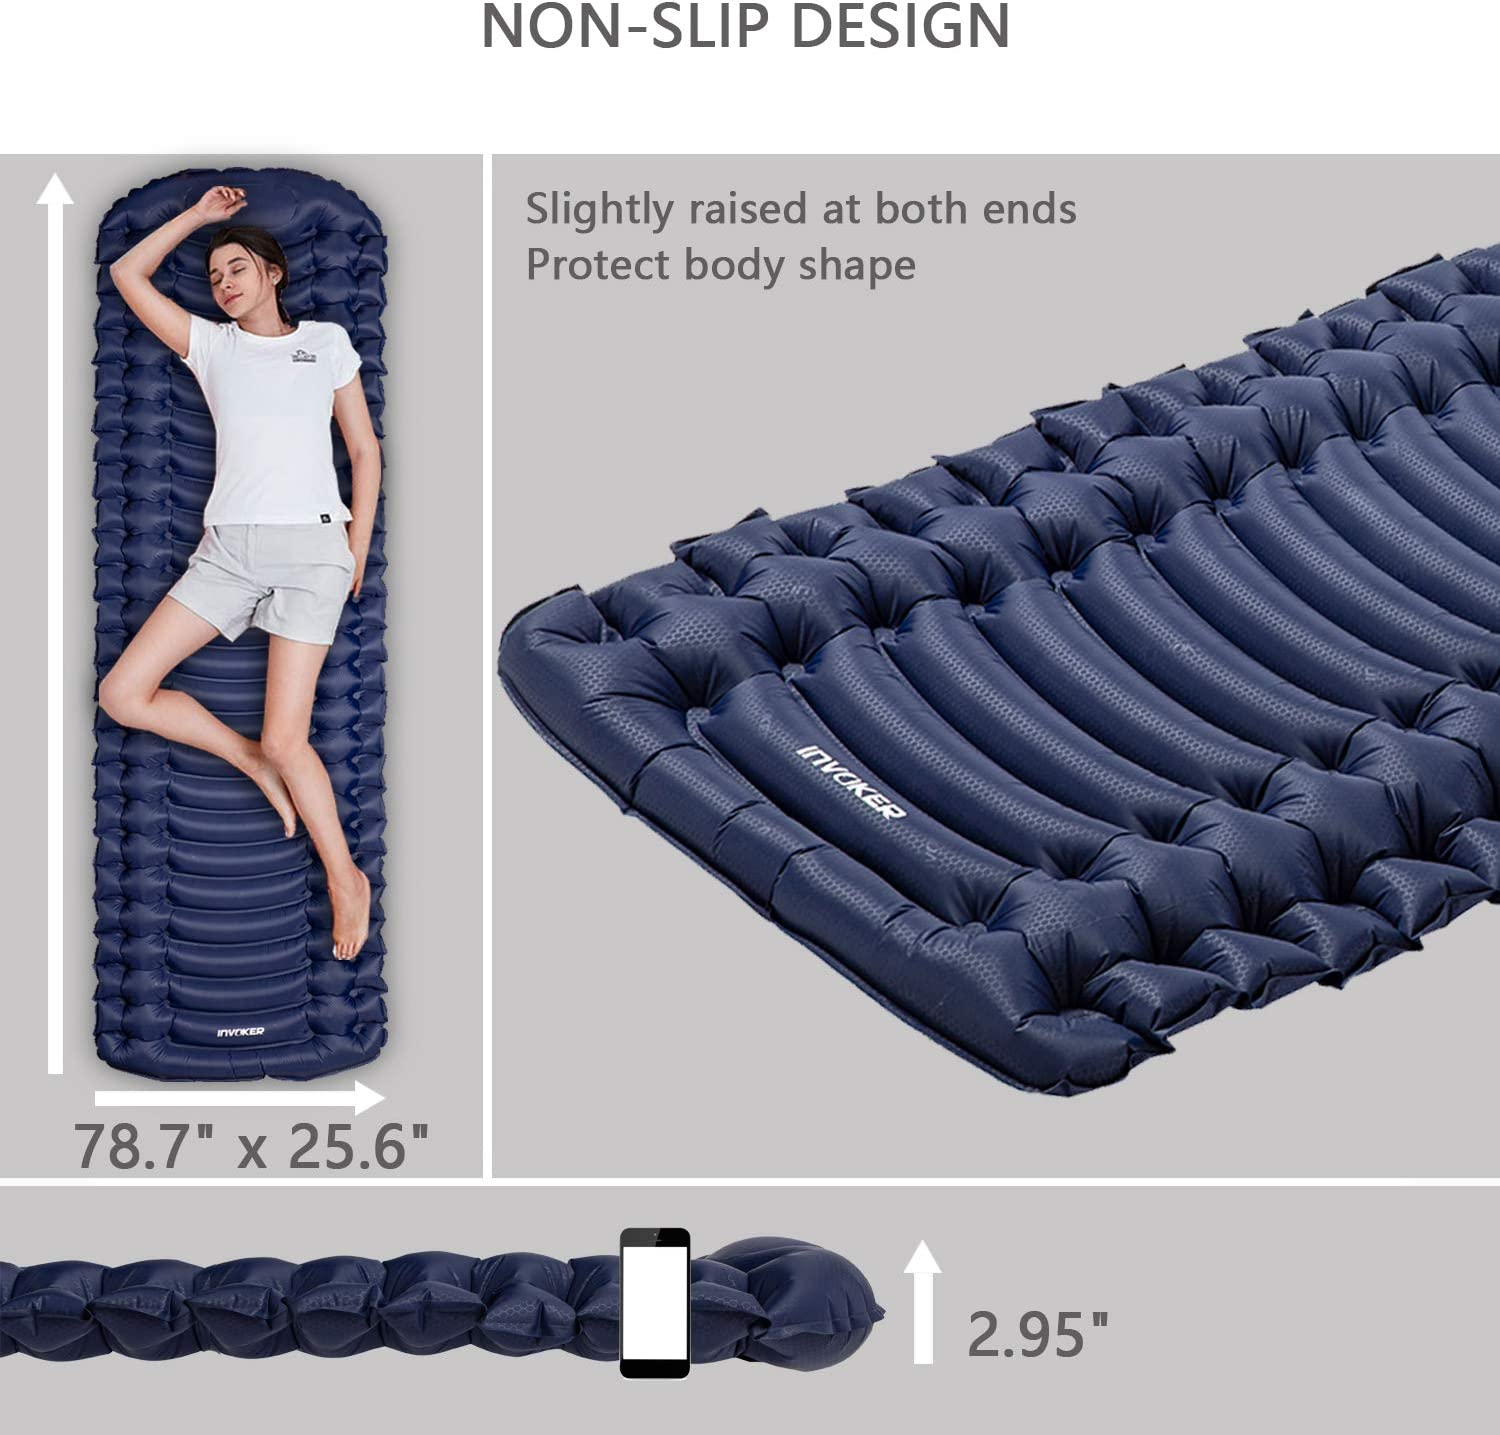 3inch UltraThick Air Mattress Inflatable Durable Fast Inflating in 25s Comfortable for Tent Backpacking Travel Hiking Self Inflating Memory Foam Camping Sleeping Mat Pad with Built in Pillow